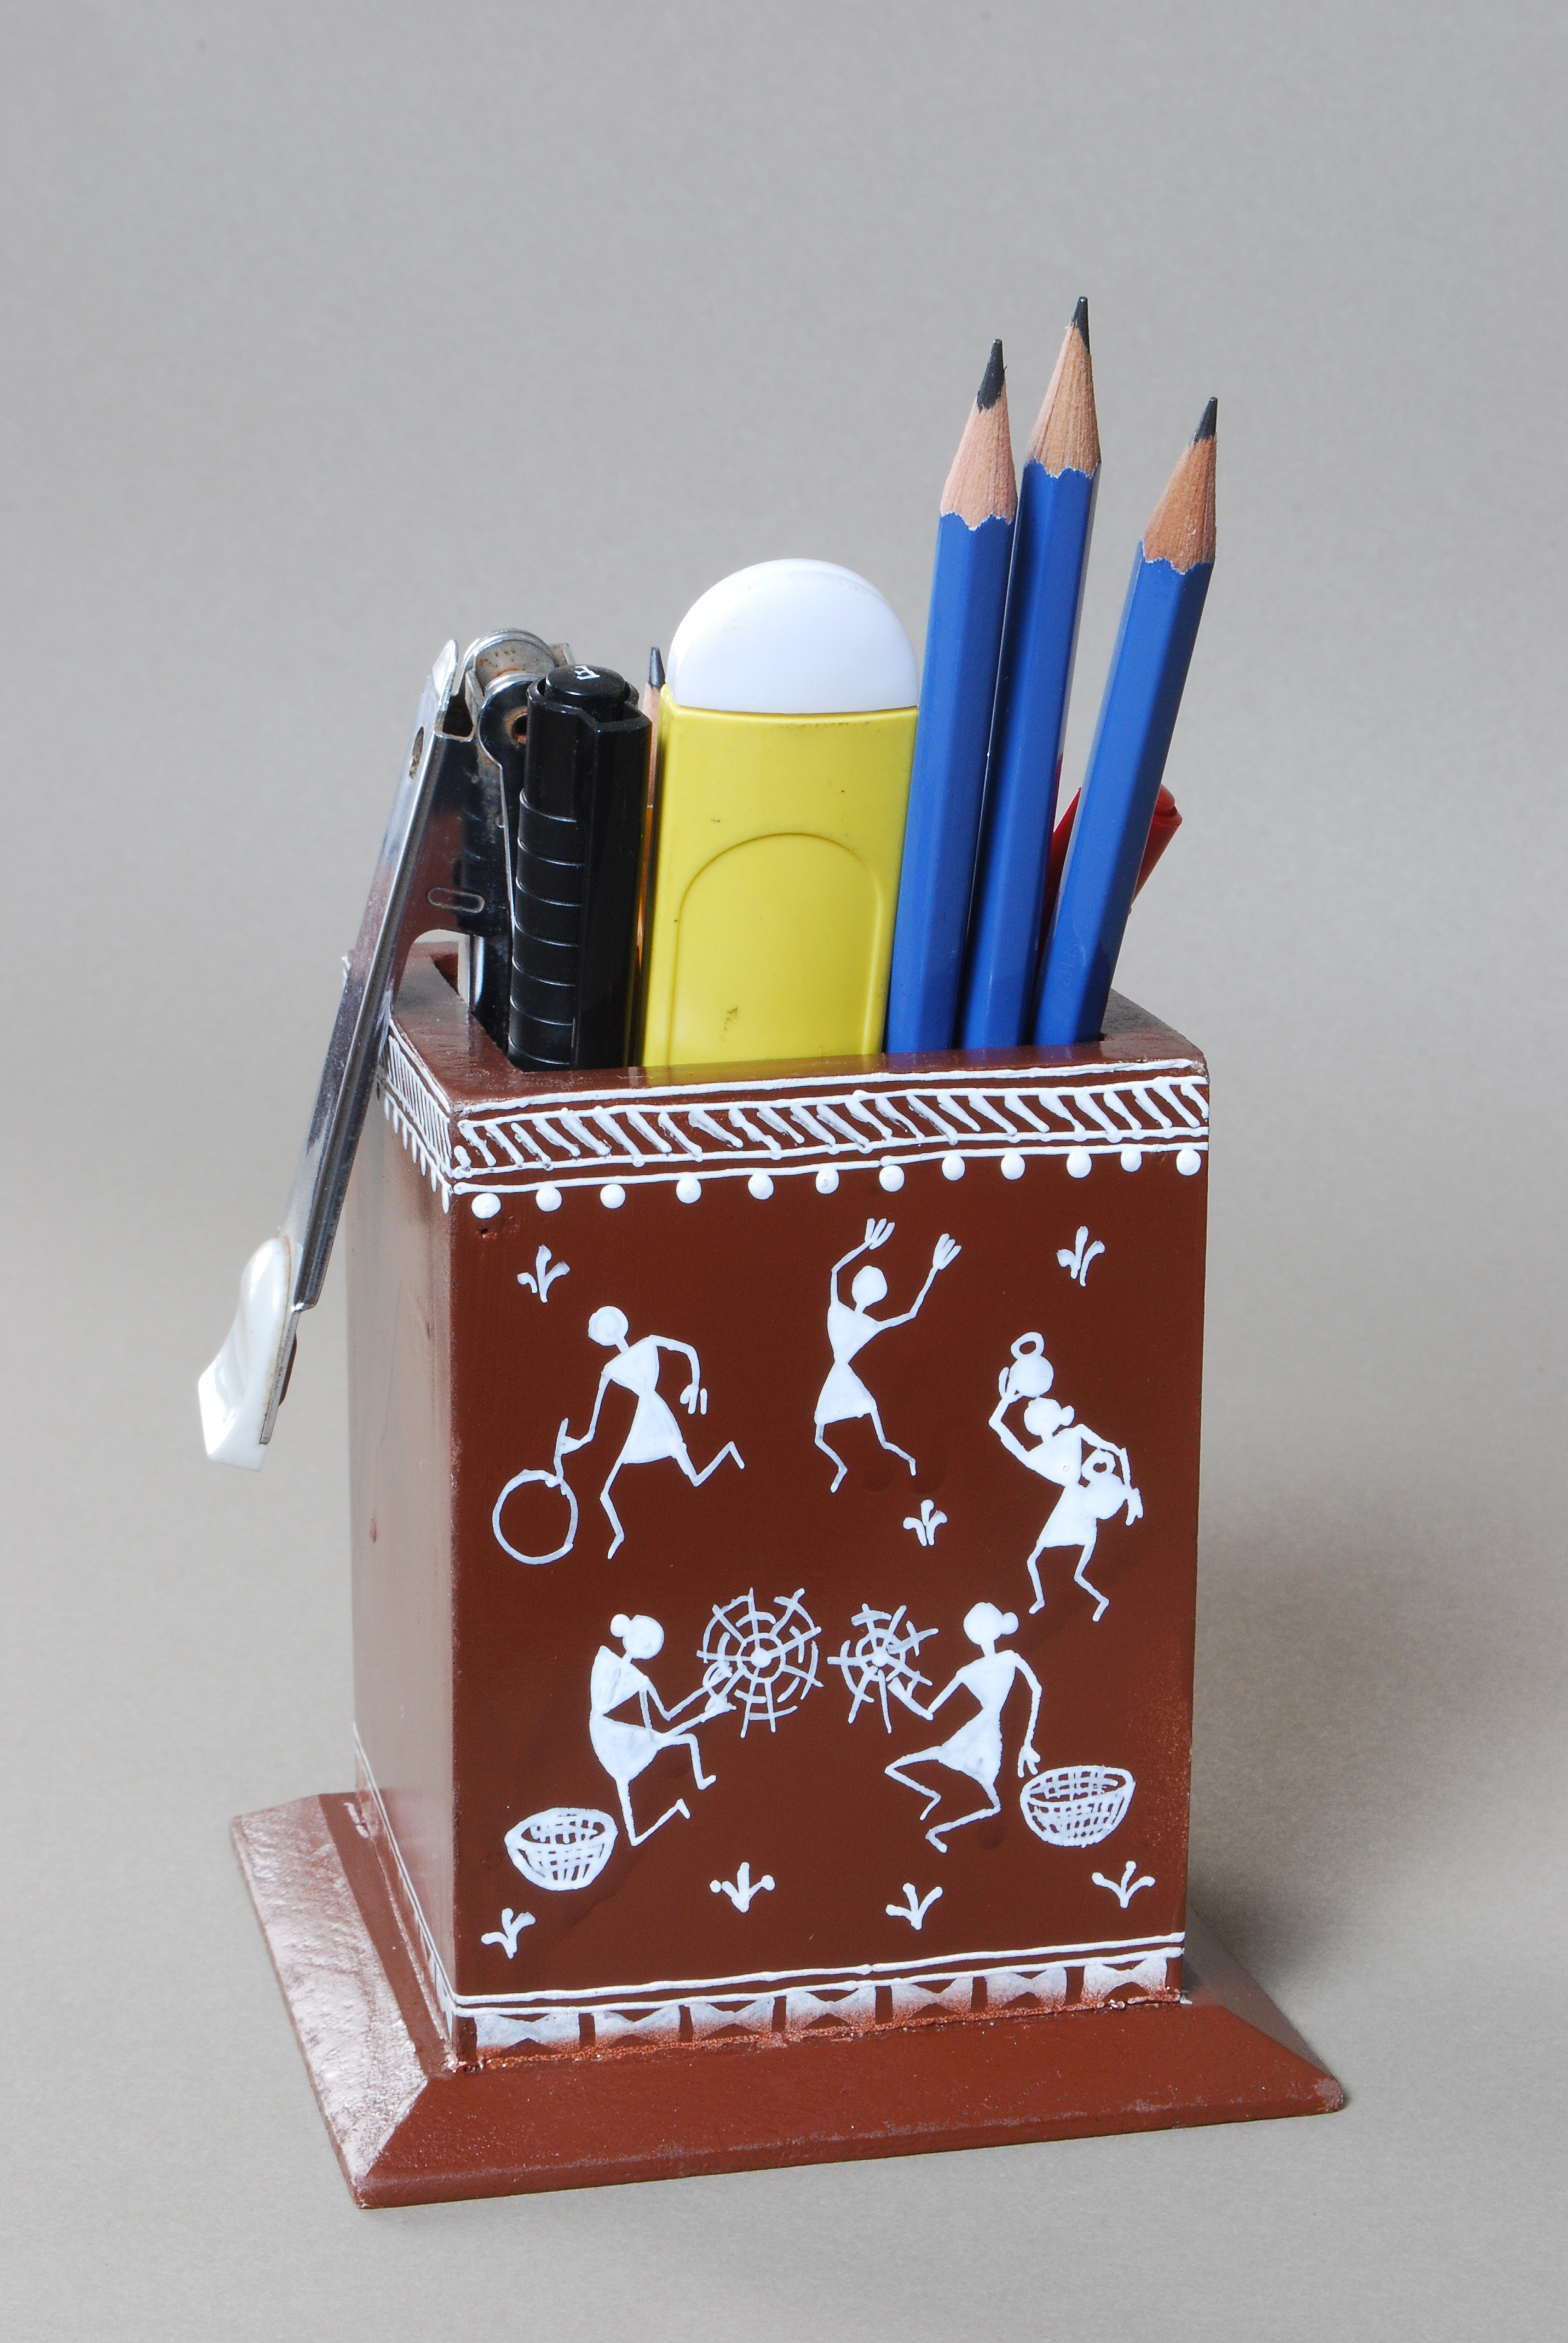 Designs Of Pen Stand : Warli pen stand manufacturer exporters from mumbai india id